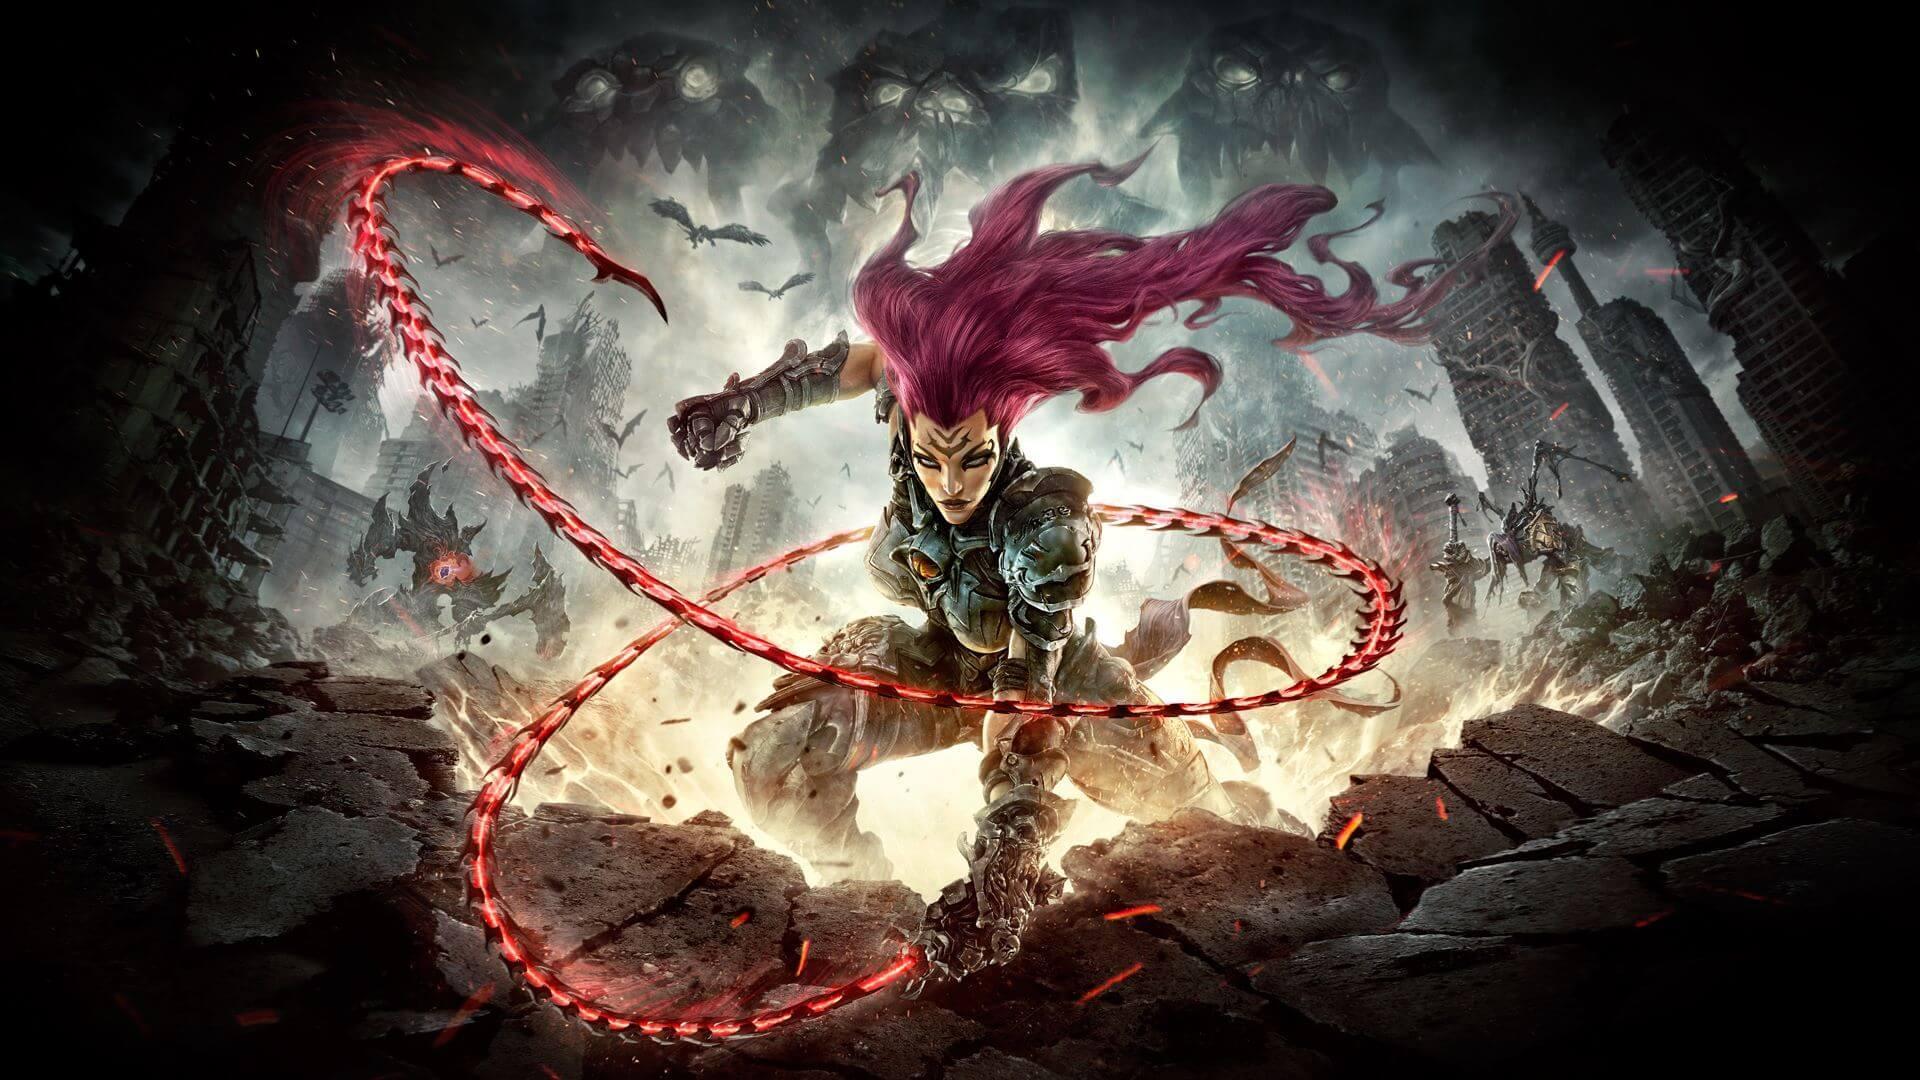 Review - Darksiders 3 (PC)